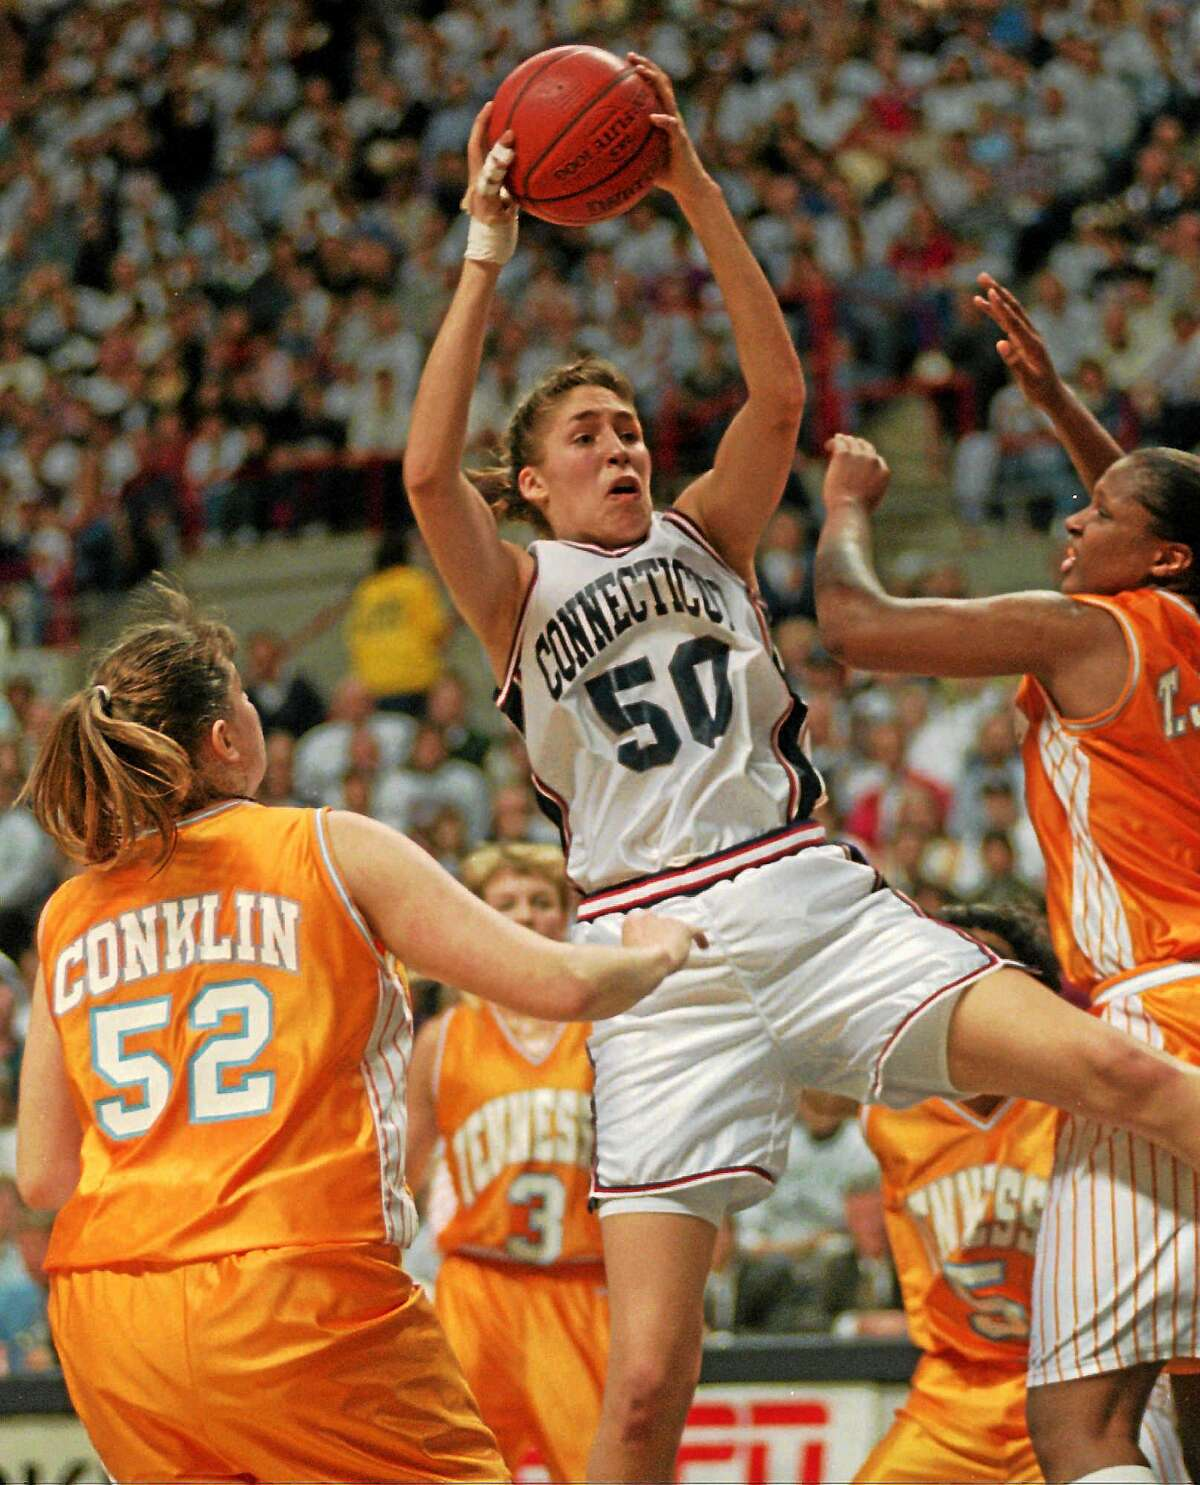 UConn's Rebecca Lobo pulls down a rebound between Tennessee's Abby Conklin and Tiffani Johnson during the Huskies' 77-66 win on Jan. 16, 1995, the first meeting between the storied programs.